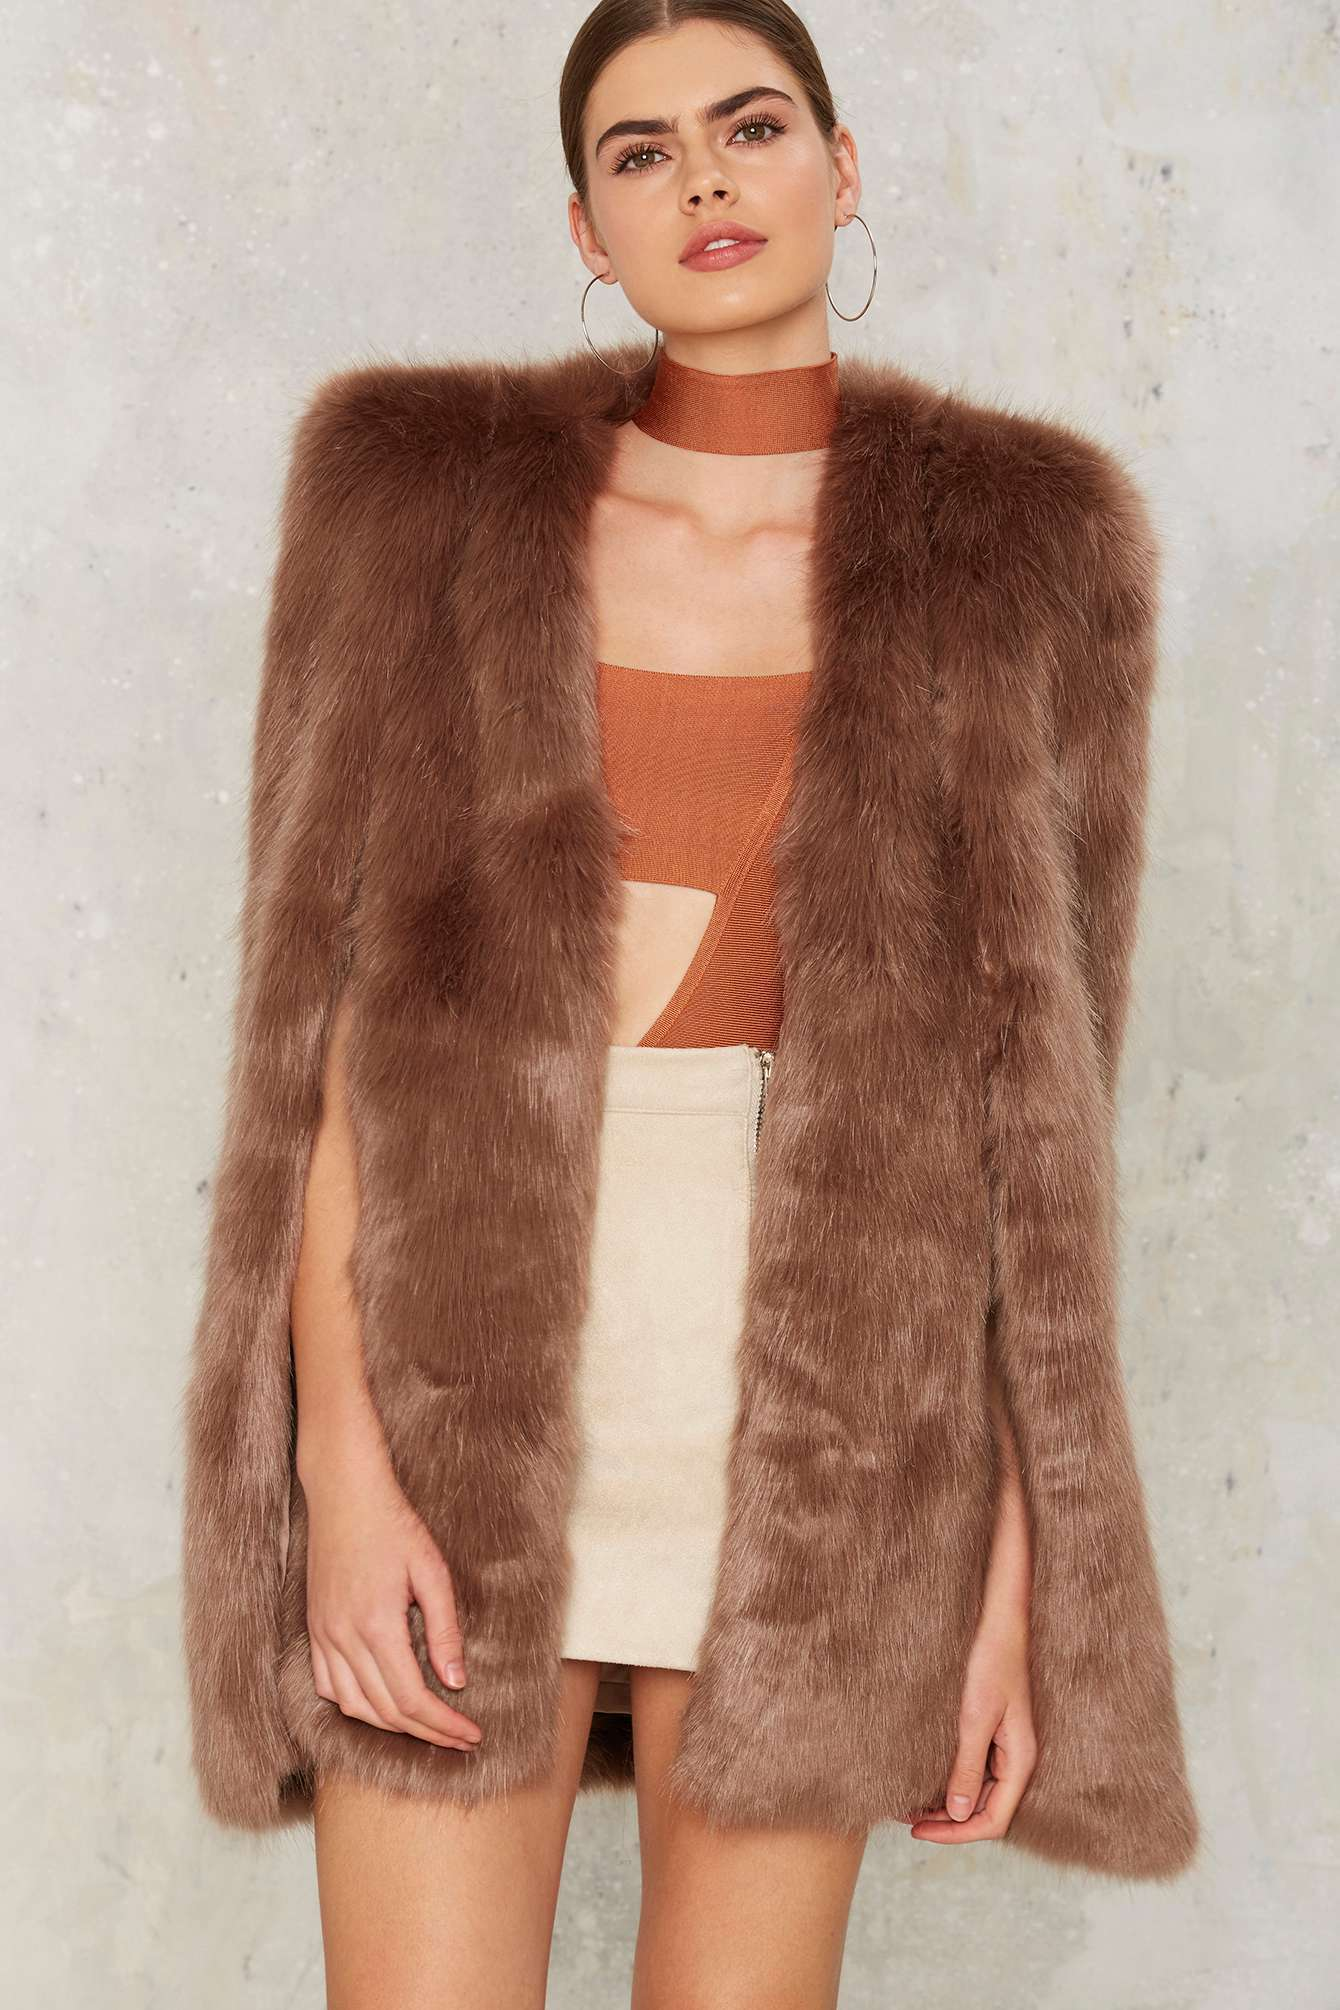 a570a98e5 Ashley Benson is obsessed with her new fur coat, and so are we ...